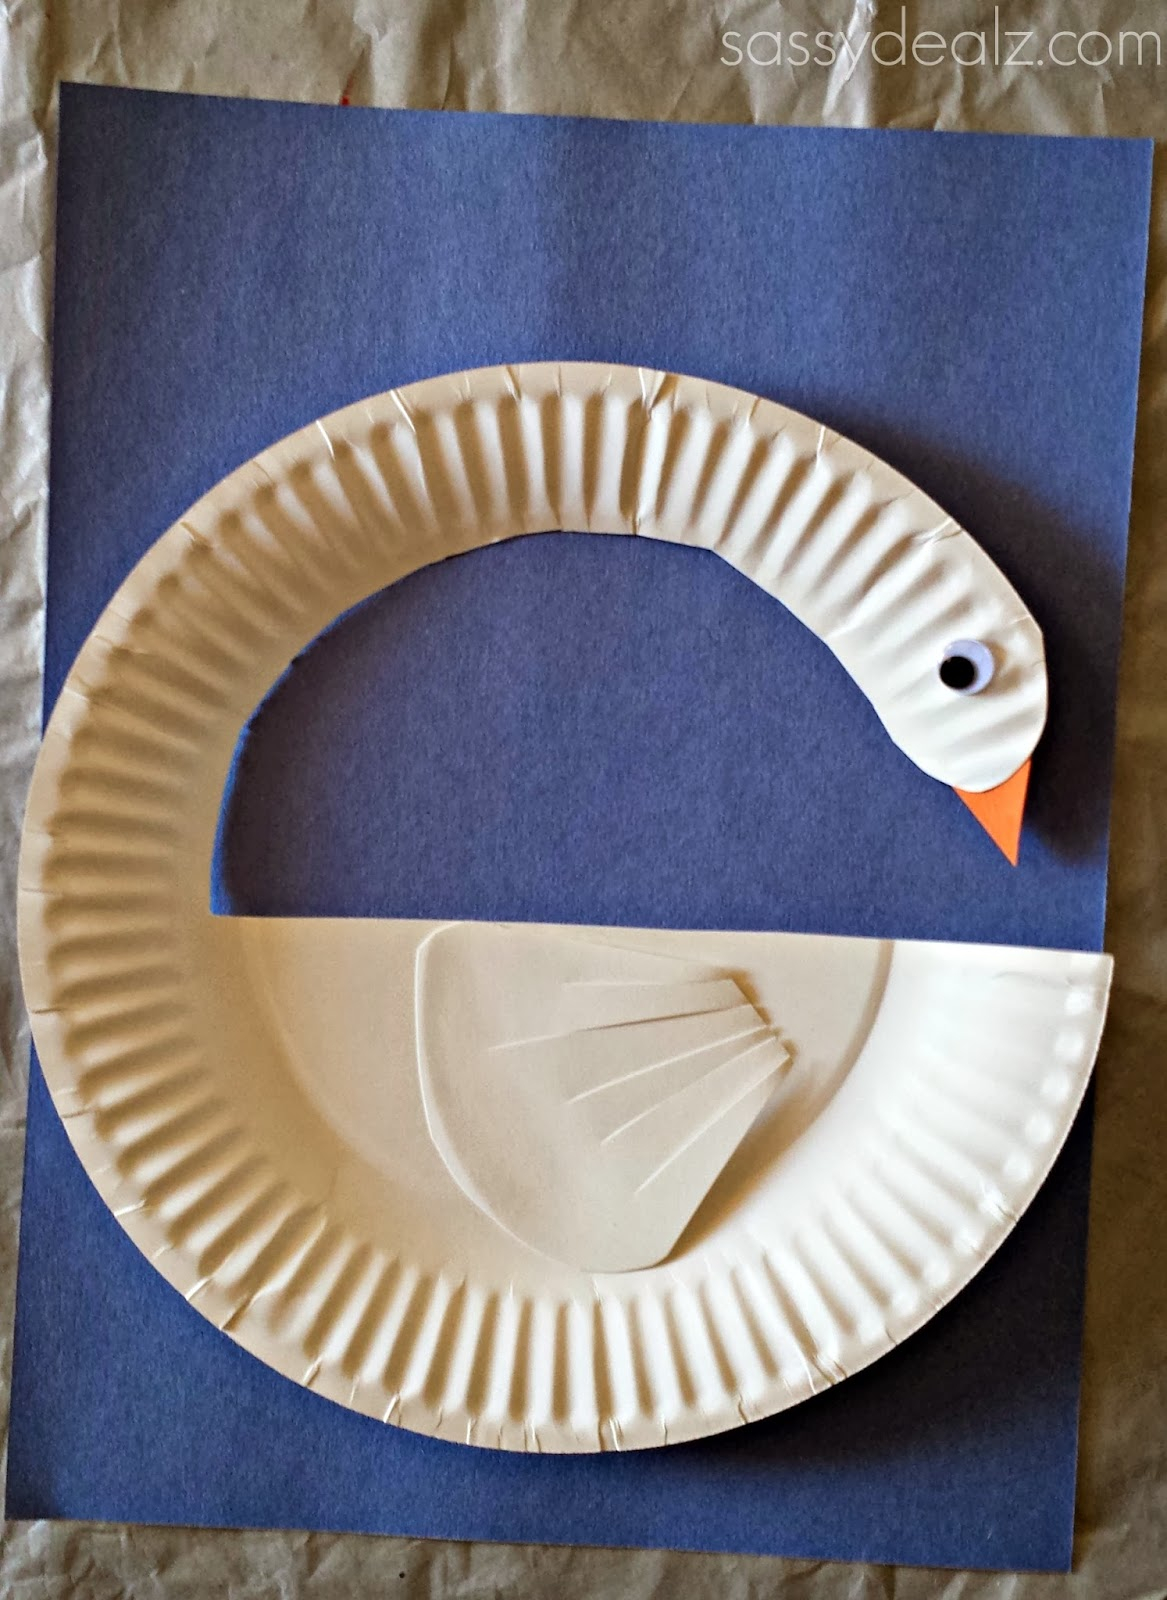 Craft With Paper Plates Diy Swan Paper Plate Craft For Kids Crafty Morning Craftrating